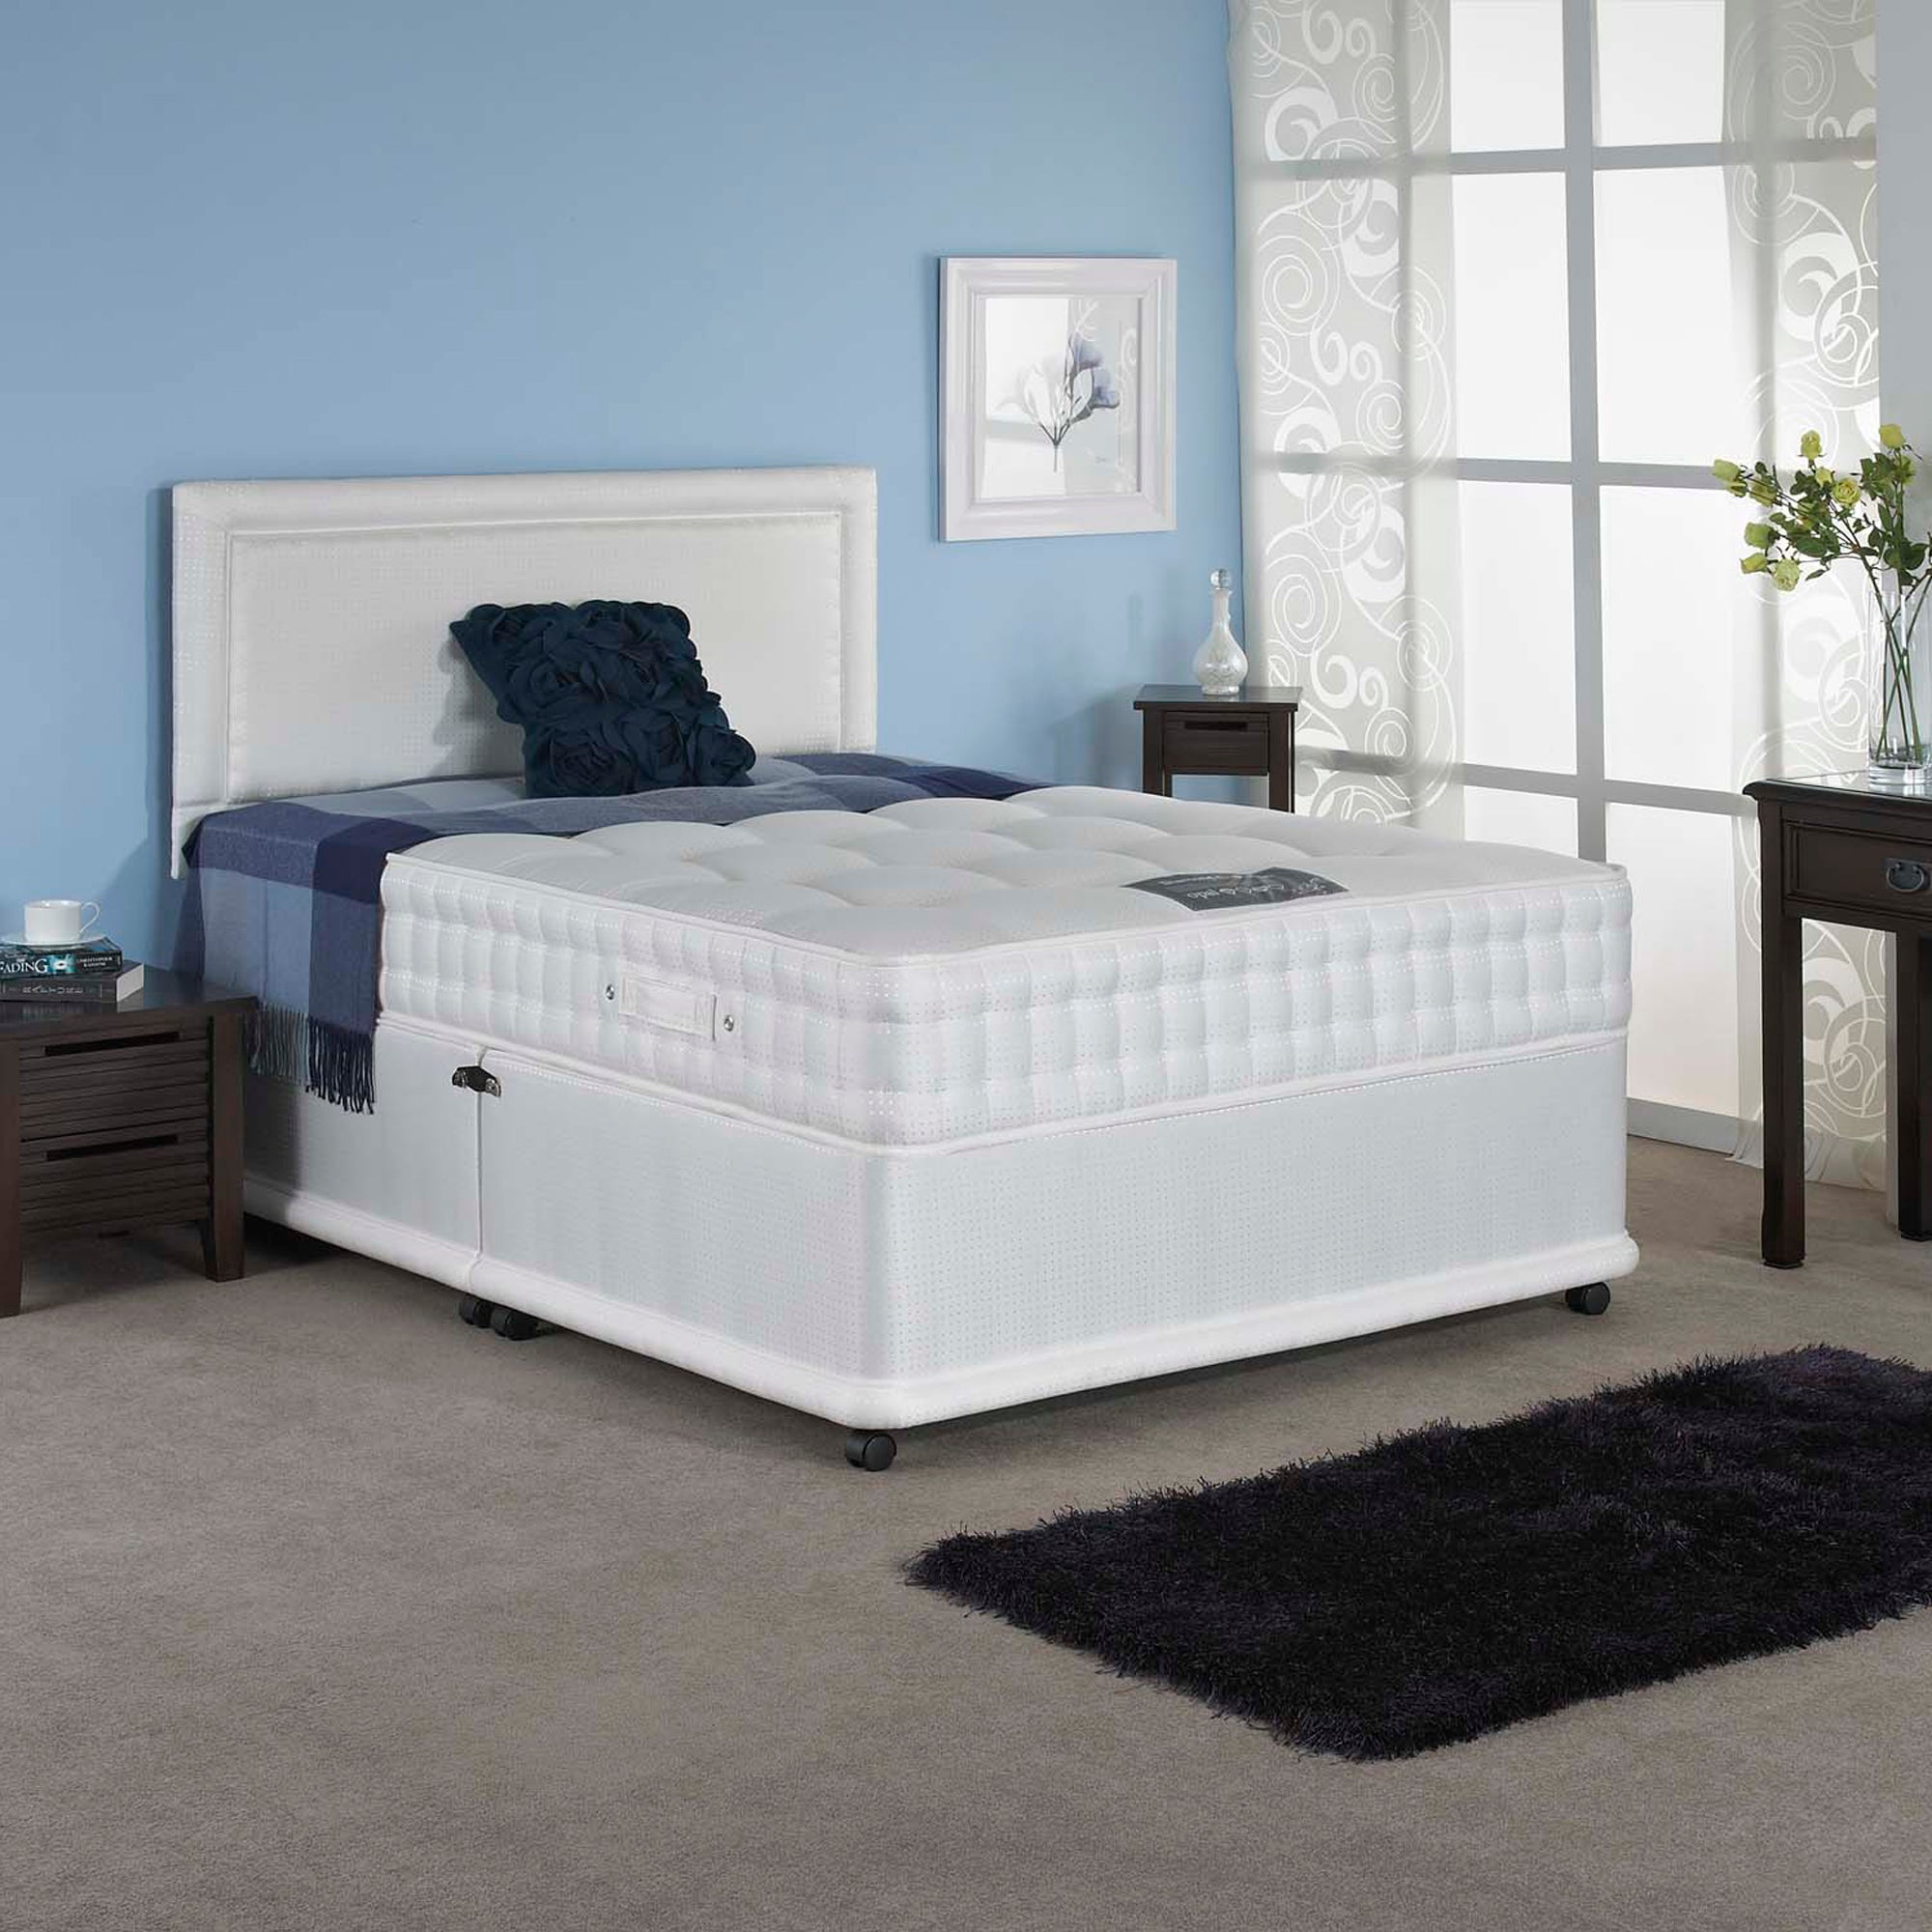 Carlisle Padded Divan Set with 2 Drawers